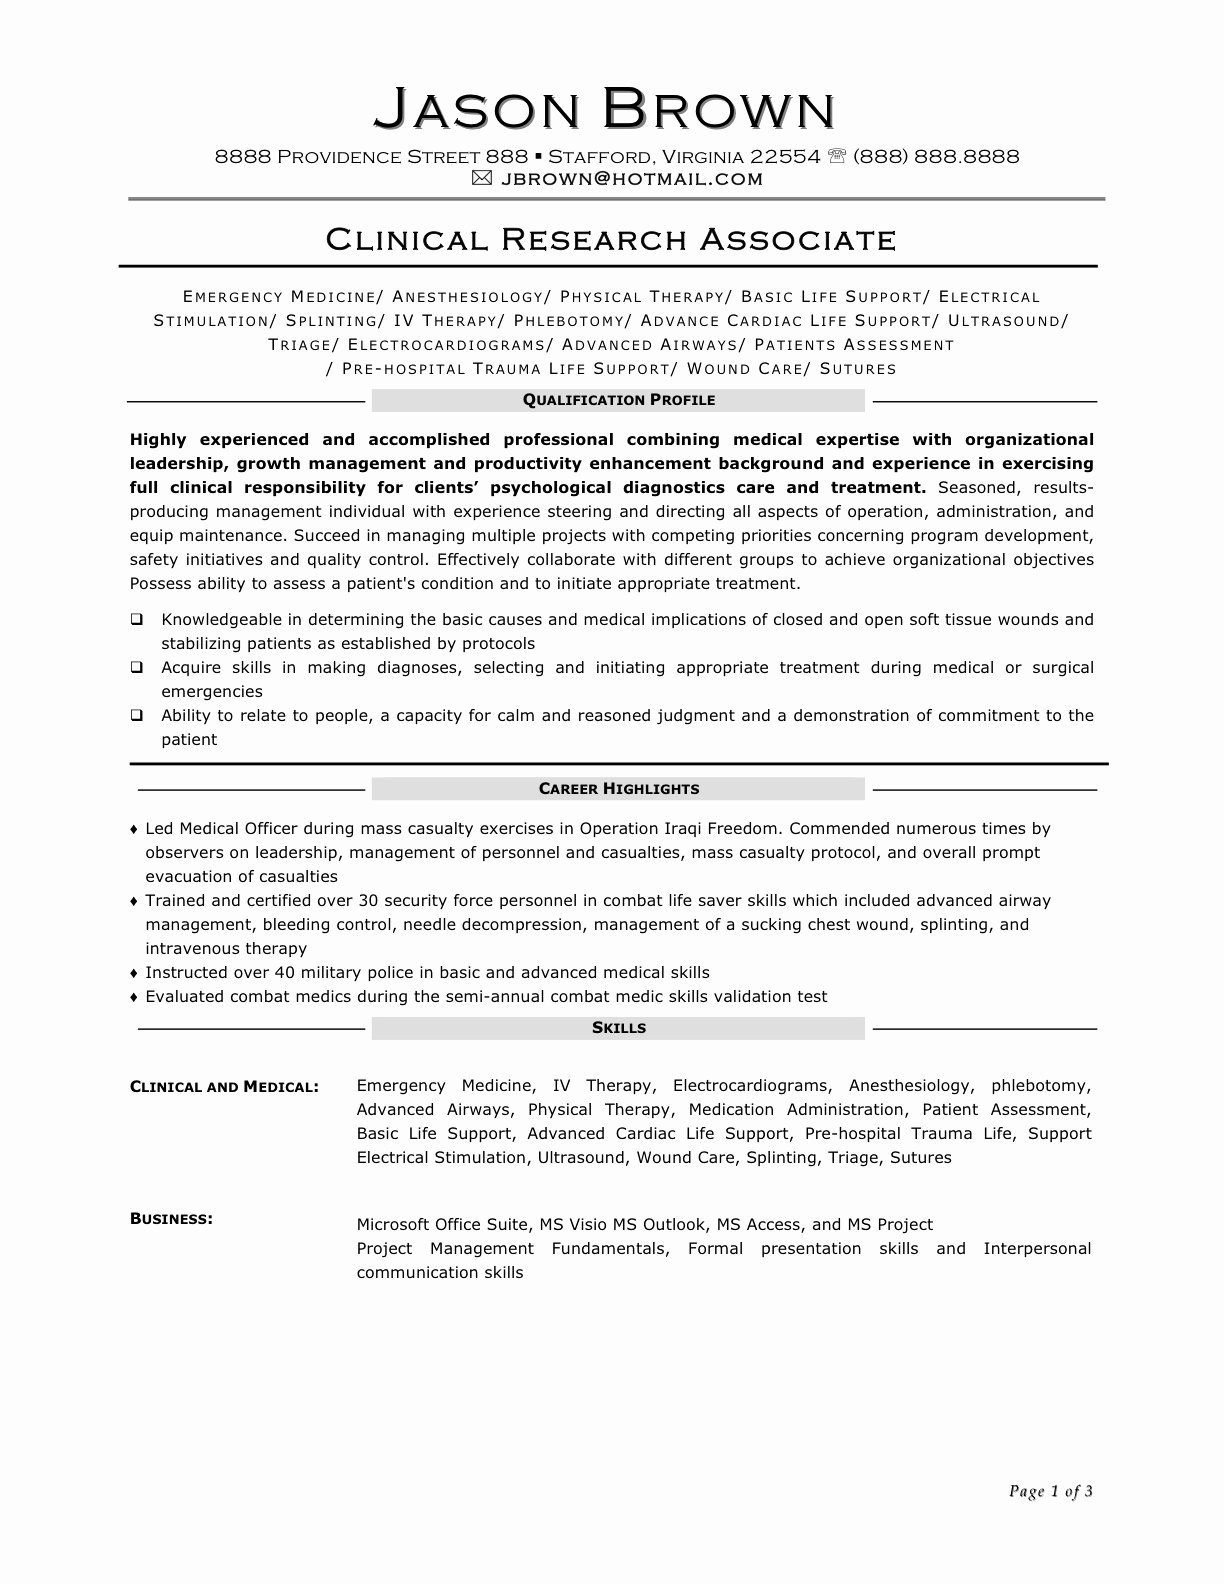 Clinical Research associate Resume Resume Ideas